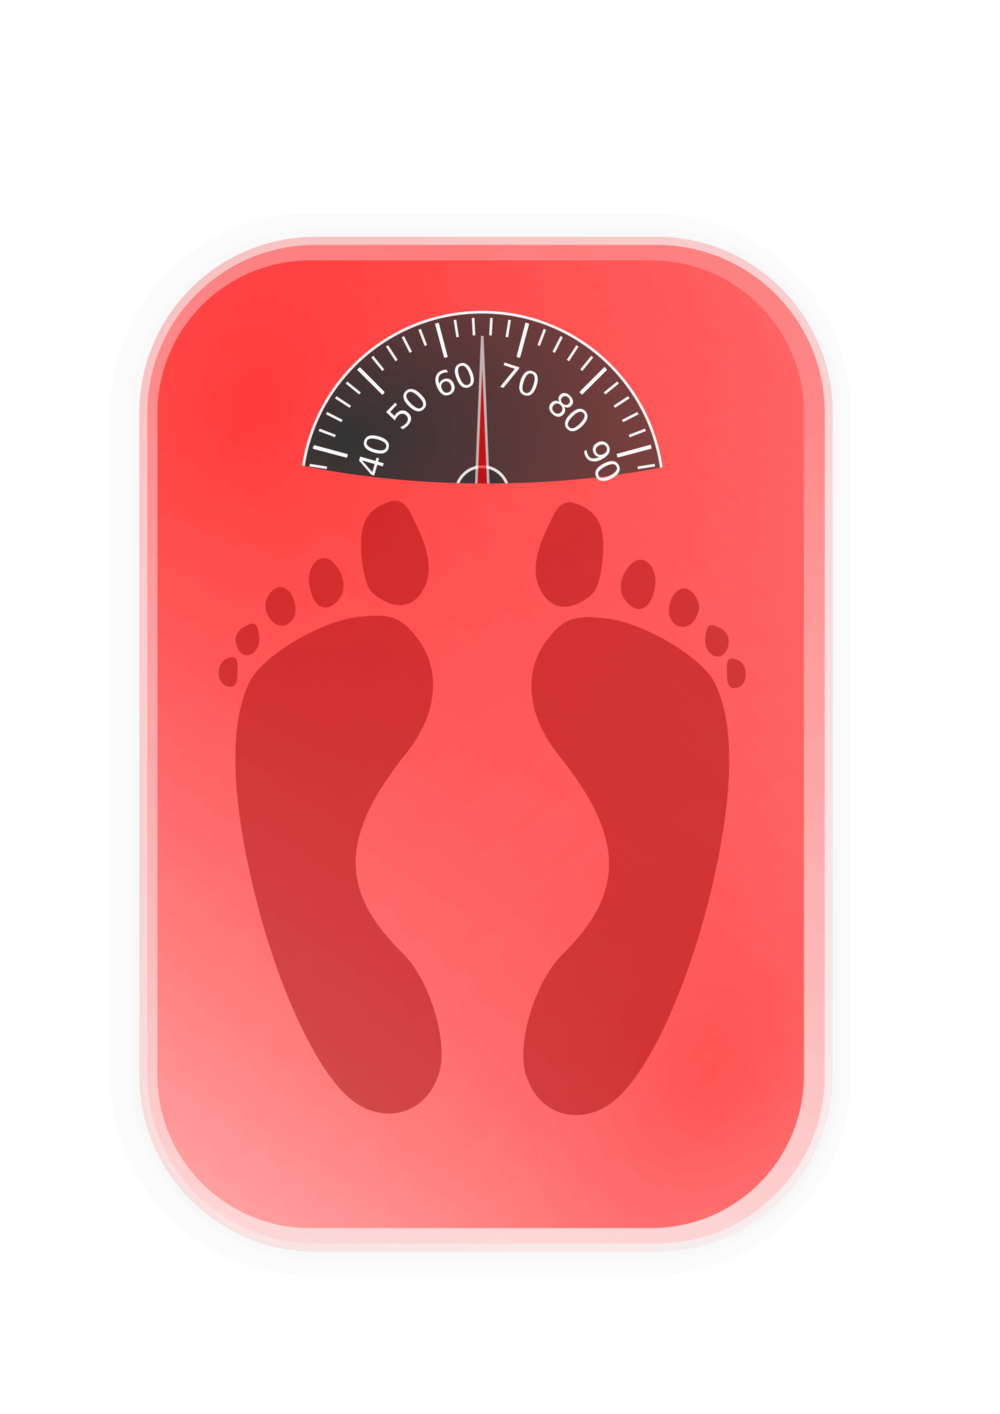 Measurements   Tracking measurements and ensuring you stay on top of your goals